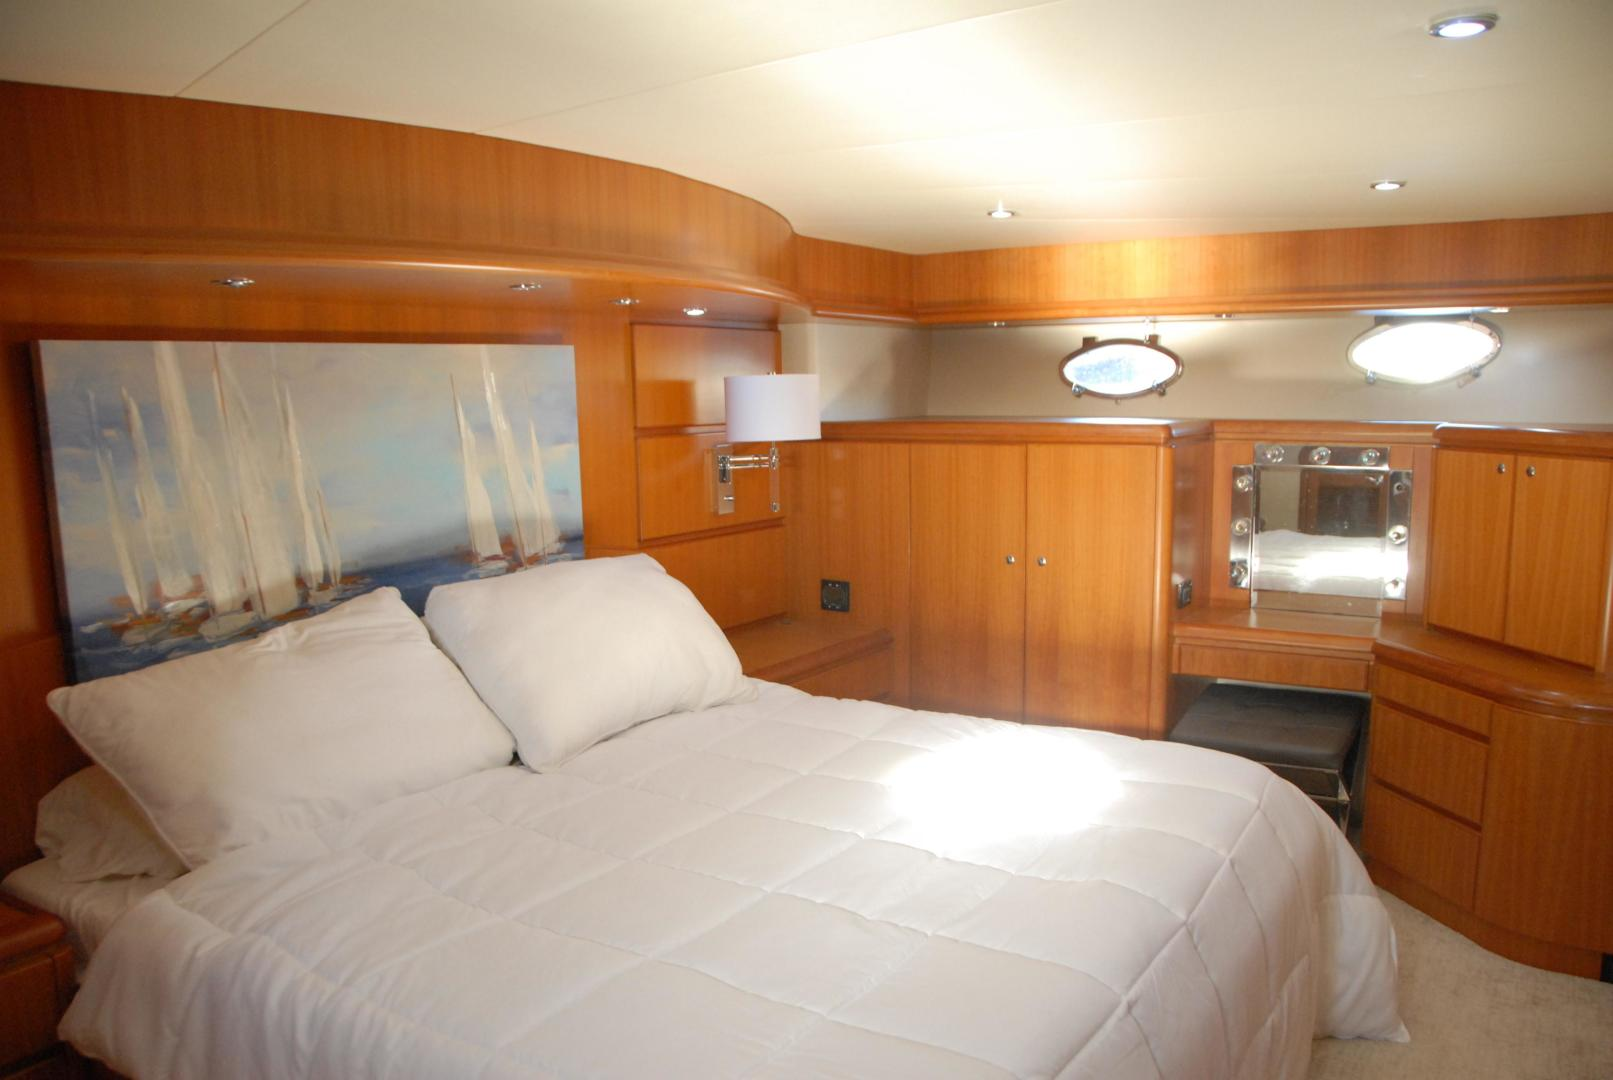 West Bay-Sonship 2003-ROOM SERVICE Fort Lauderdale-Florida-United States-Master Stateroom-474084 | Thumbnail